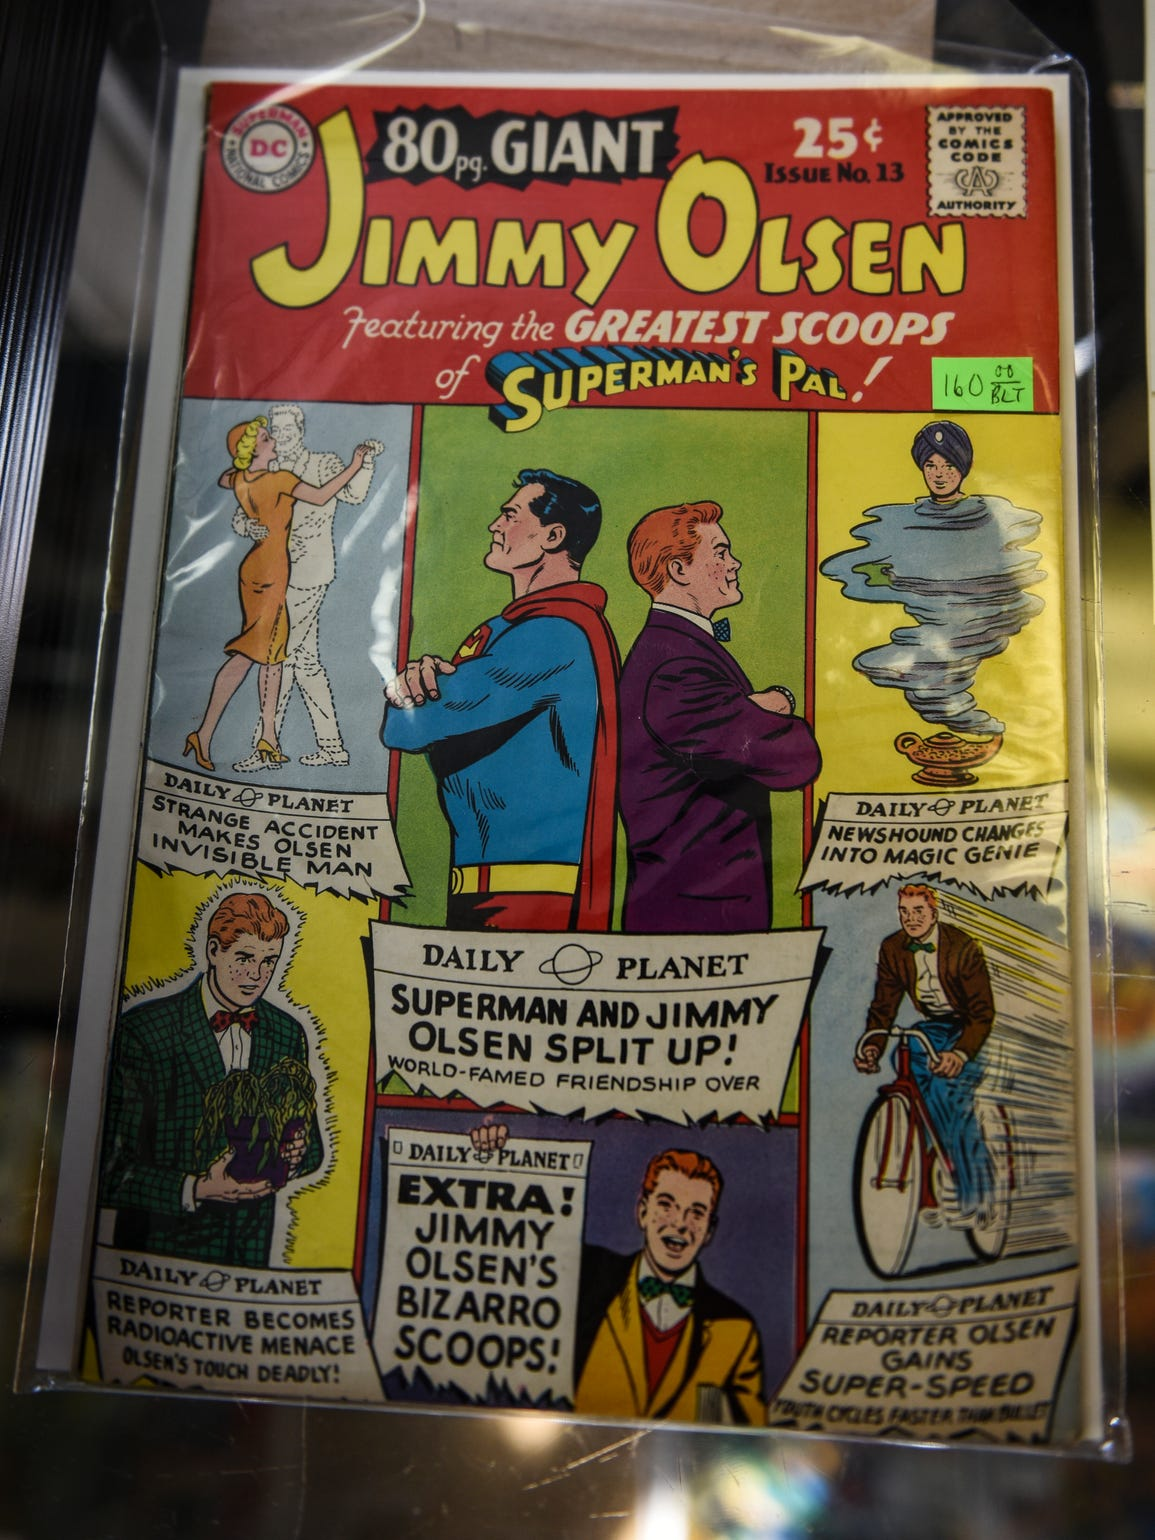 A giant comic book of Jimmy Olsen at Comics and Paperbacks